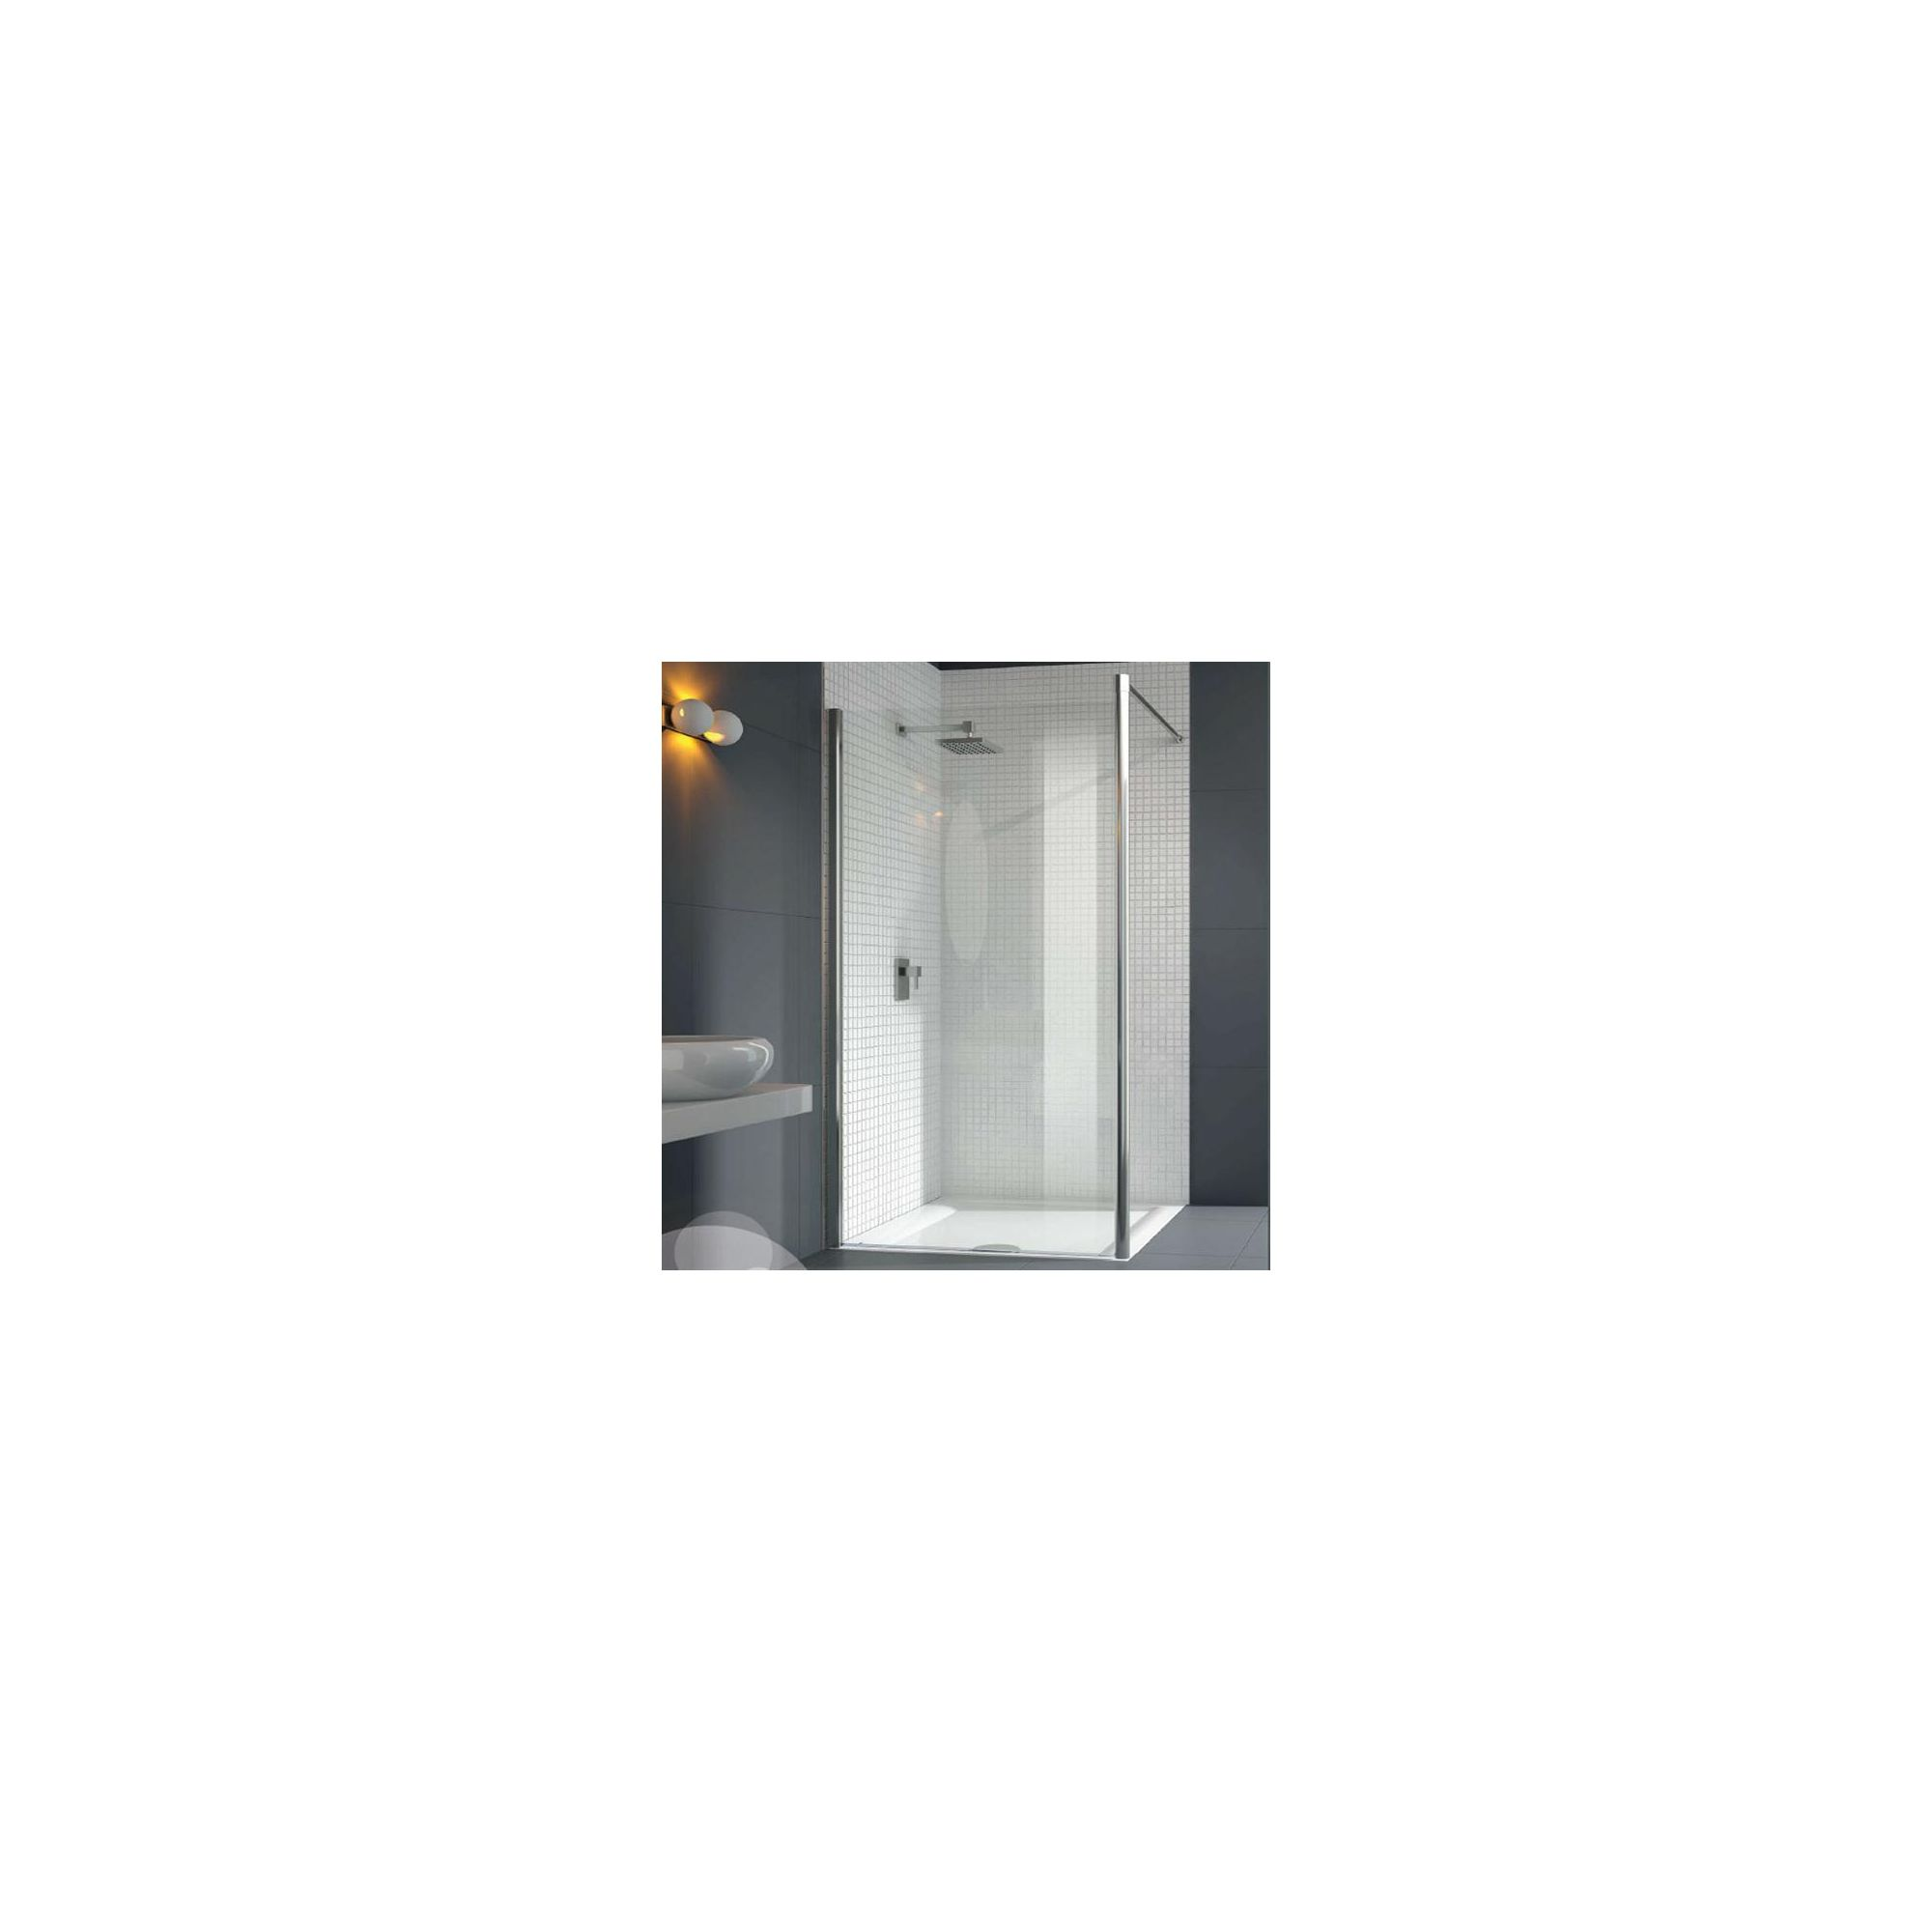 Merlyn Vivid Six Wet Room Shower Enclosure, 900mm x 900mm, Horizontal Support Bar, Low Profile Tray, 6mm Glass at Tesco Direct